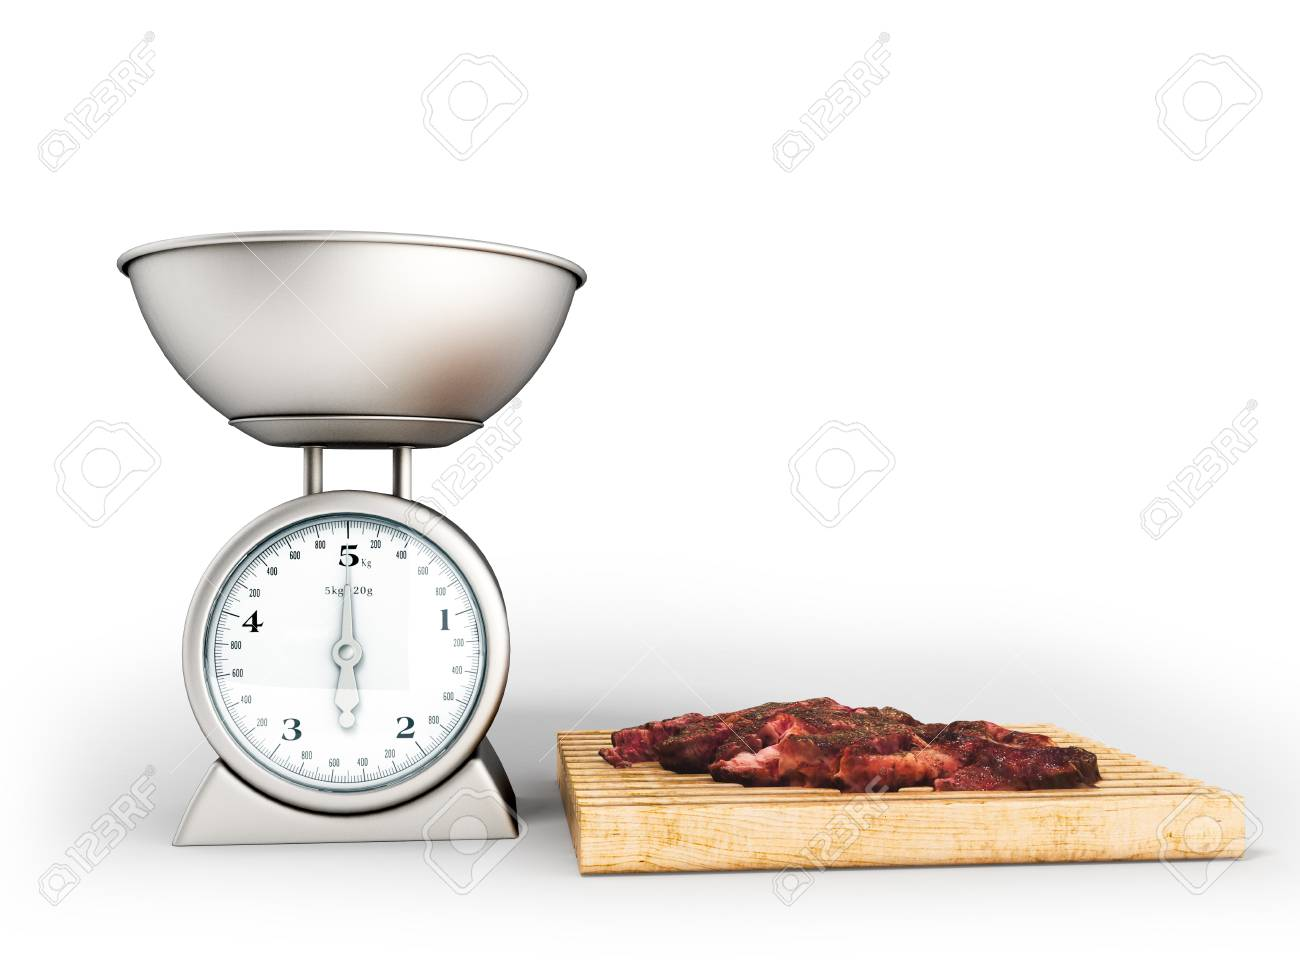 Kitchen Scales Cutting Board With Meat 3d Rendering On White.. Stock ...